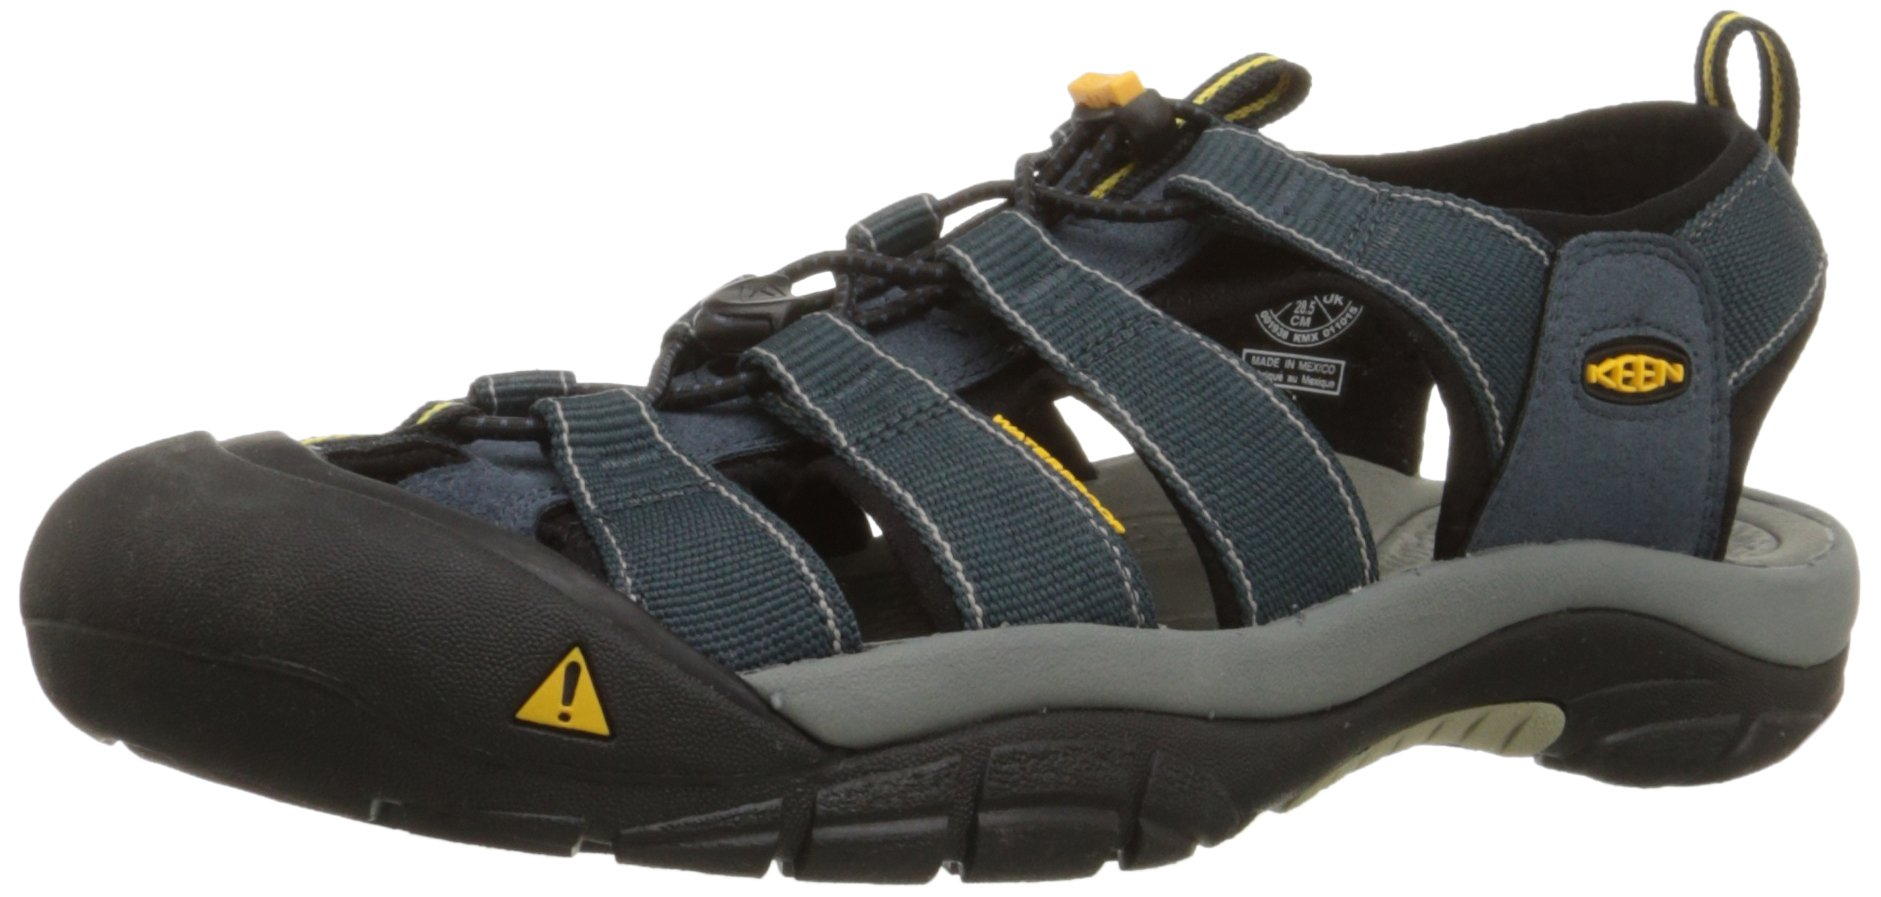 KEEN Men's Newport H2 Sandal,Navy/Medium Grey,10.5 M US by KEEN